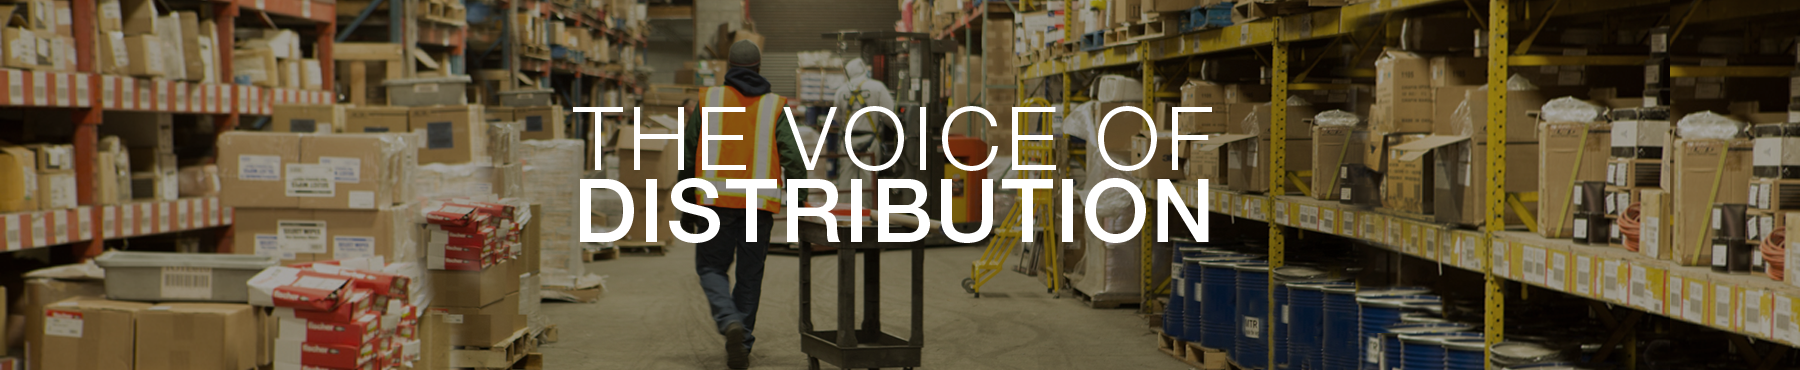 The Voice of Distribution